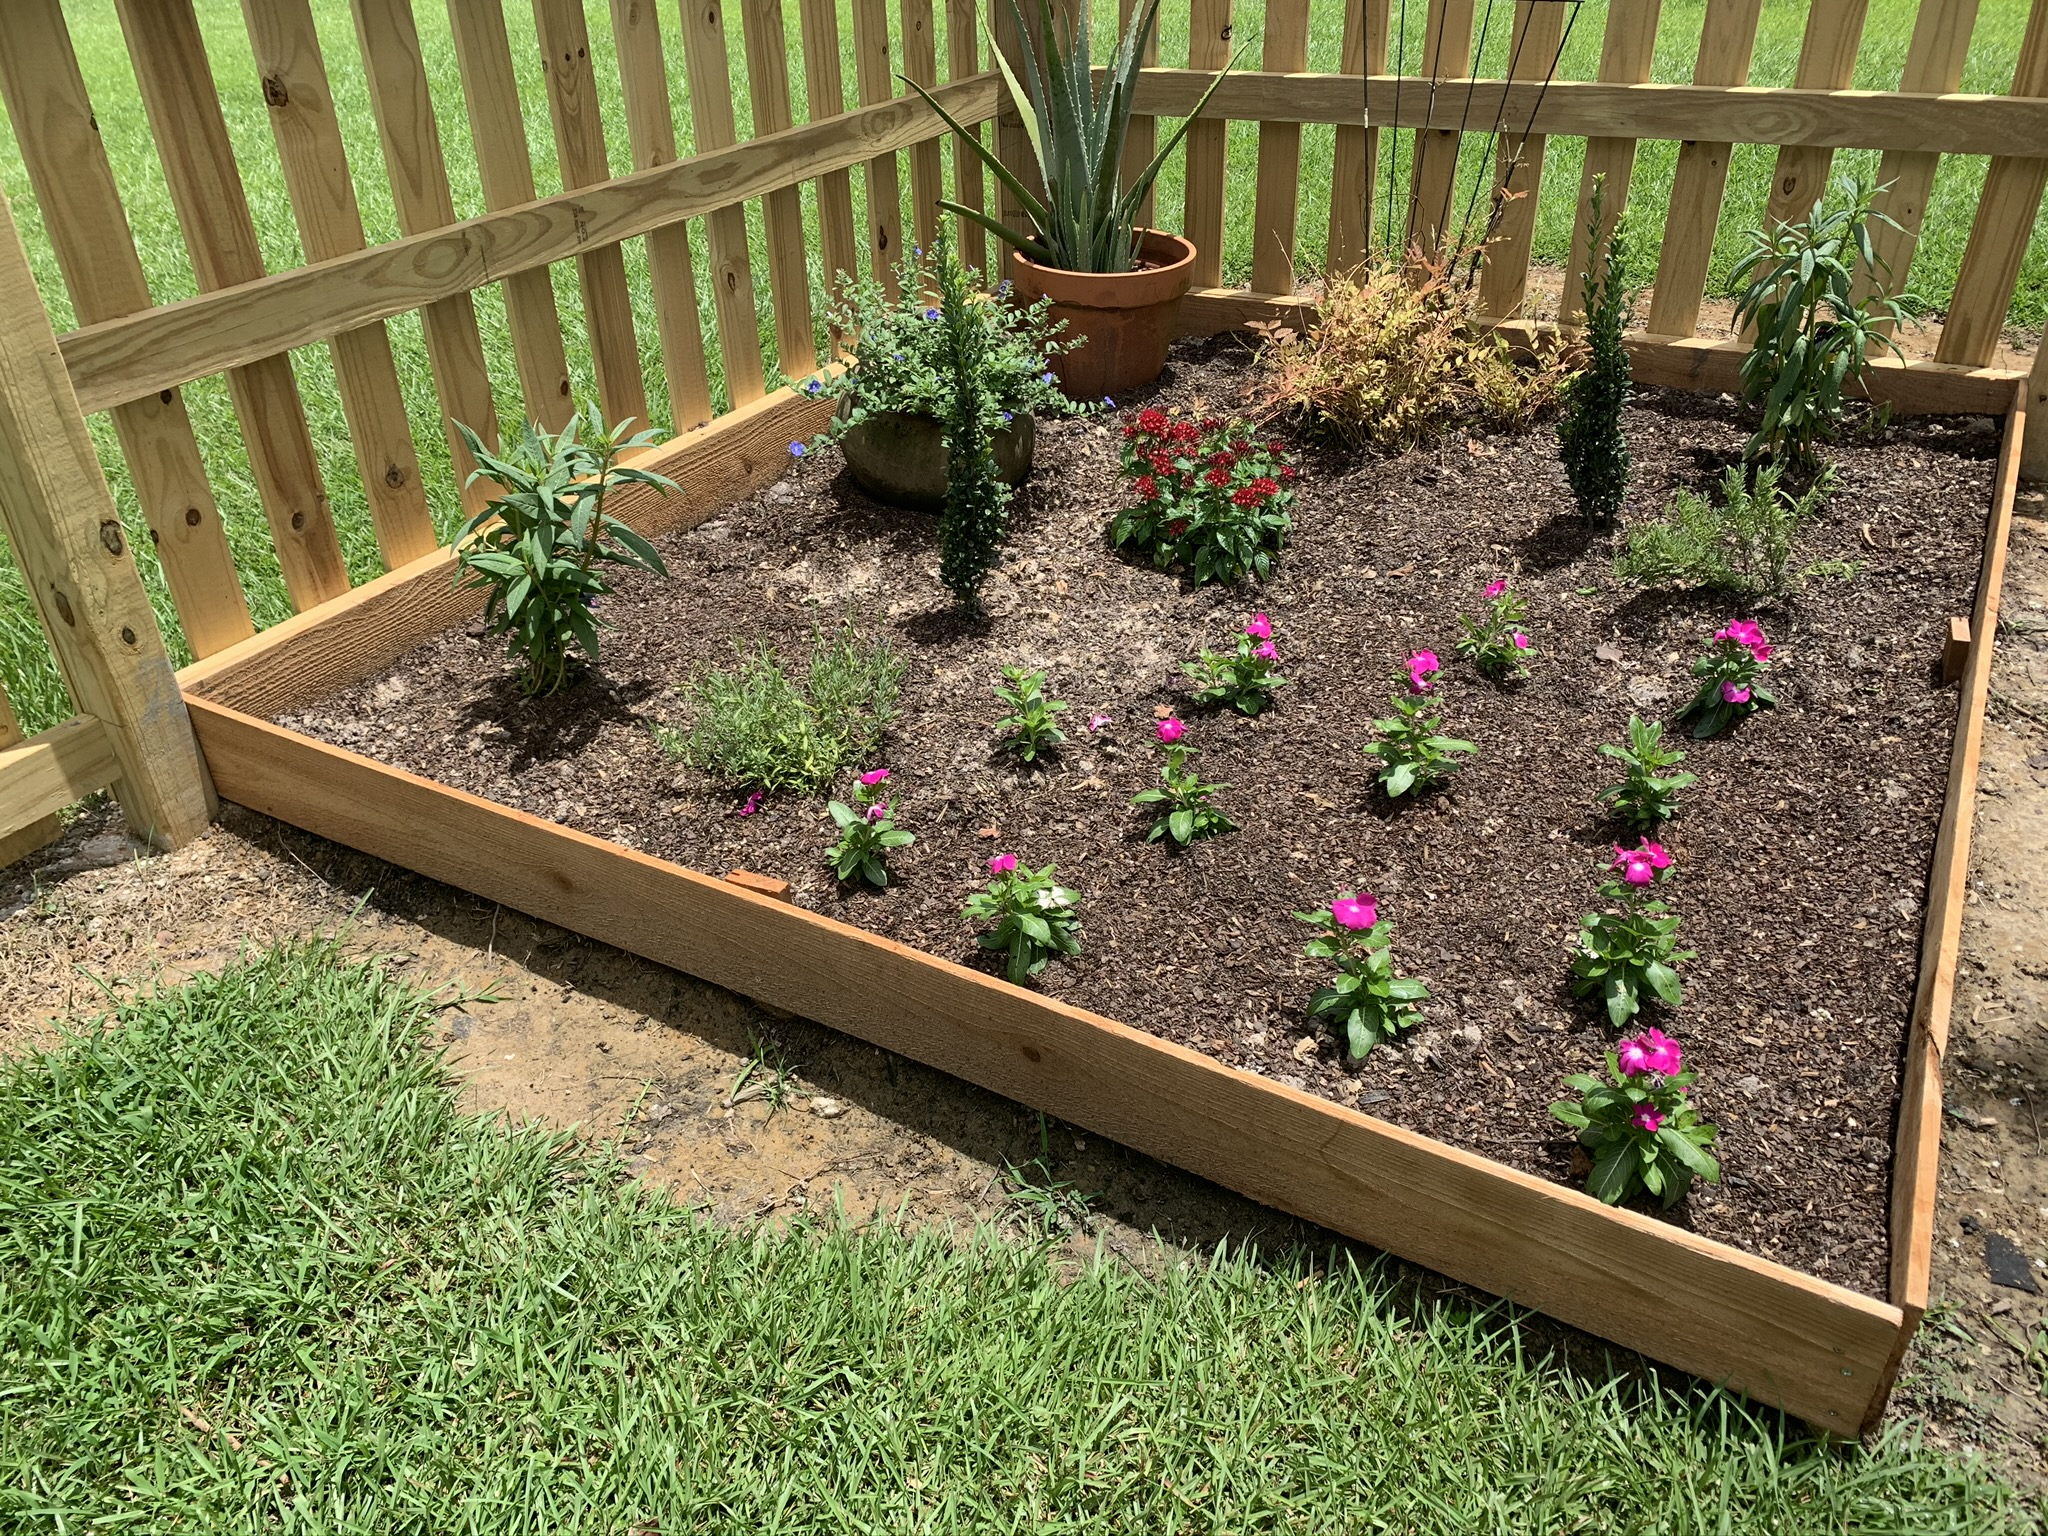 Garden bed made of cedar fence boards